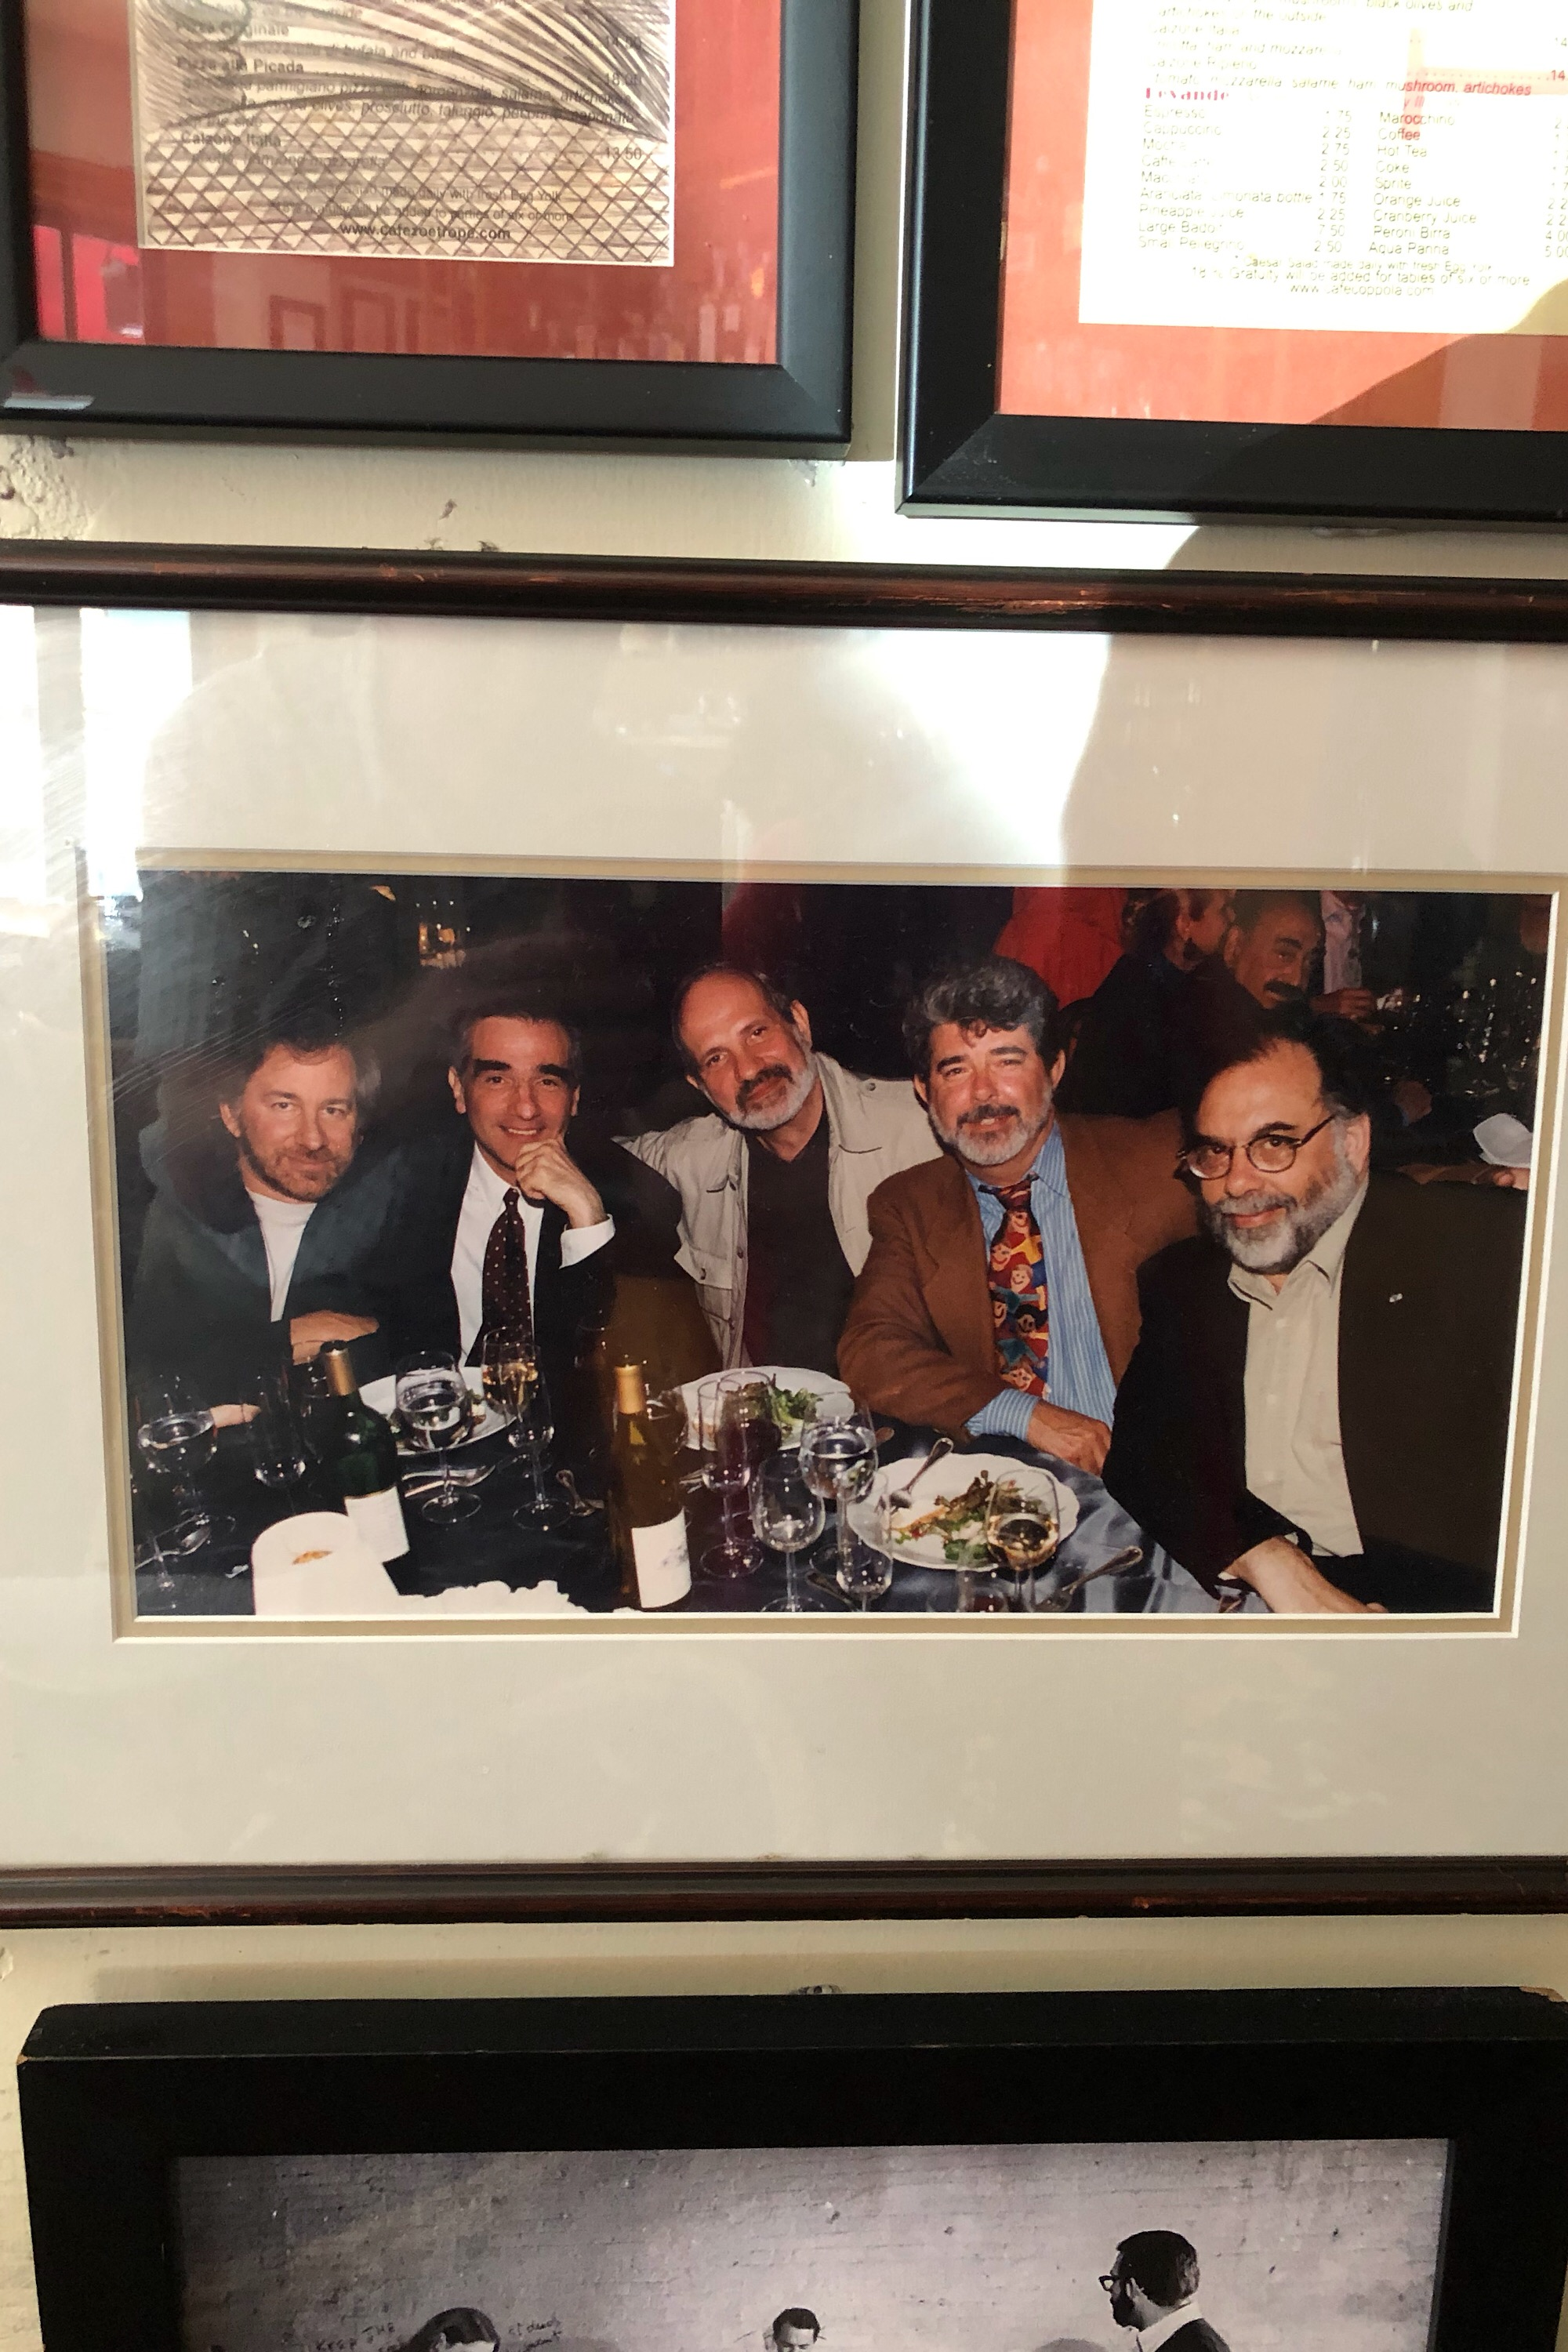 Quite the quintet... Spielberg, Scorsese, De Palma, Lucas, and Coppola in their prime.